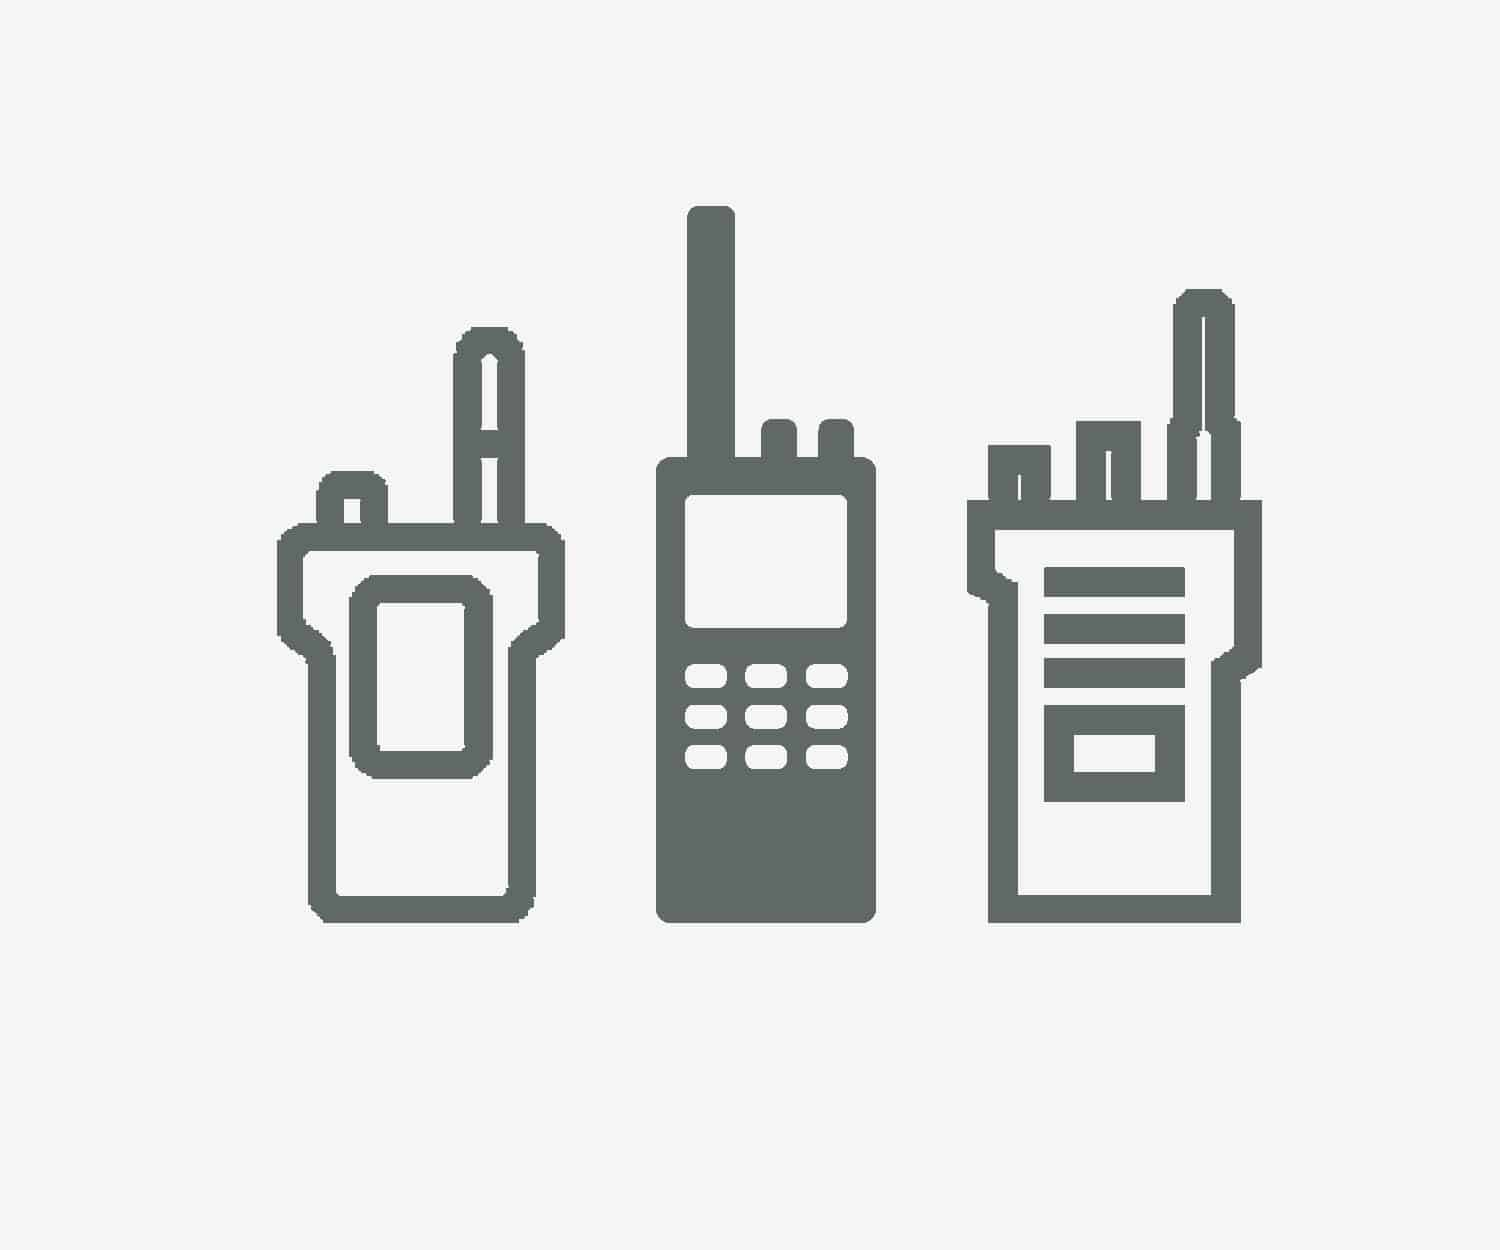 Licence free vs. licenced two way radios - grey